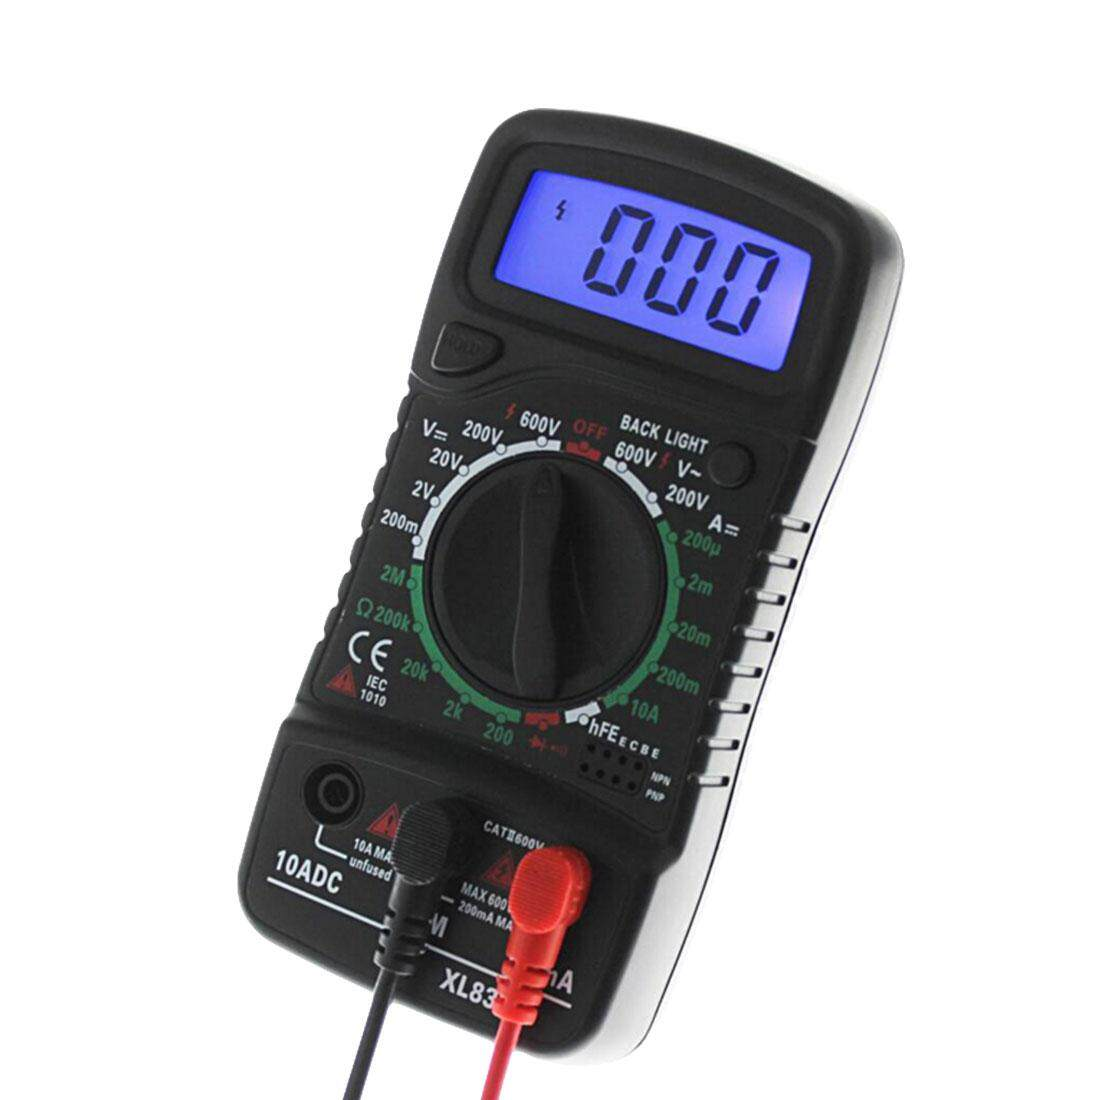 Detail Gambar Digital Multimeter Tester with LCD Backlight Display AC/DC Voltmeter Resistance Current Volt Ohm Tester Meter - intl Terbaru